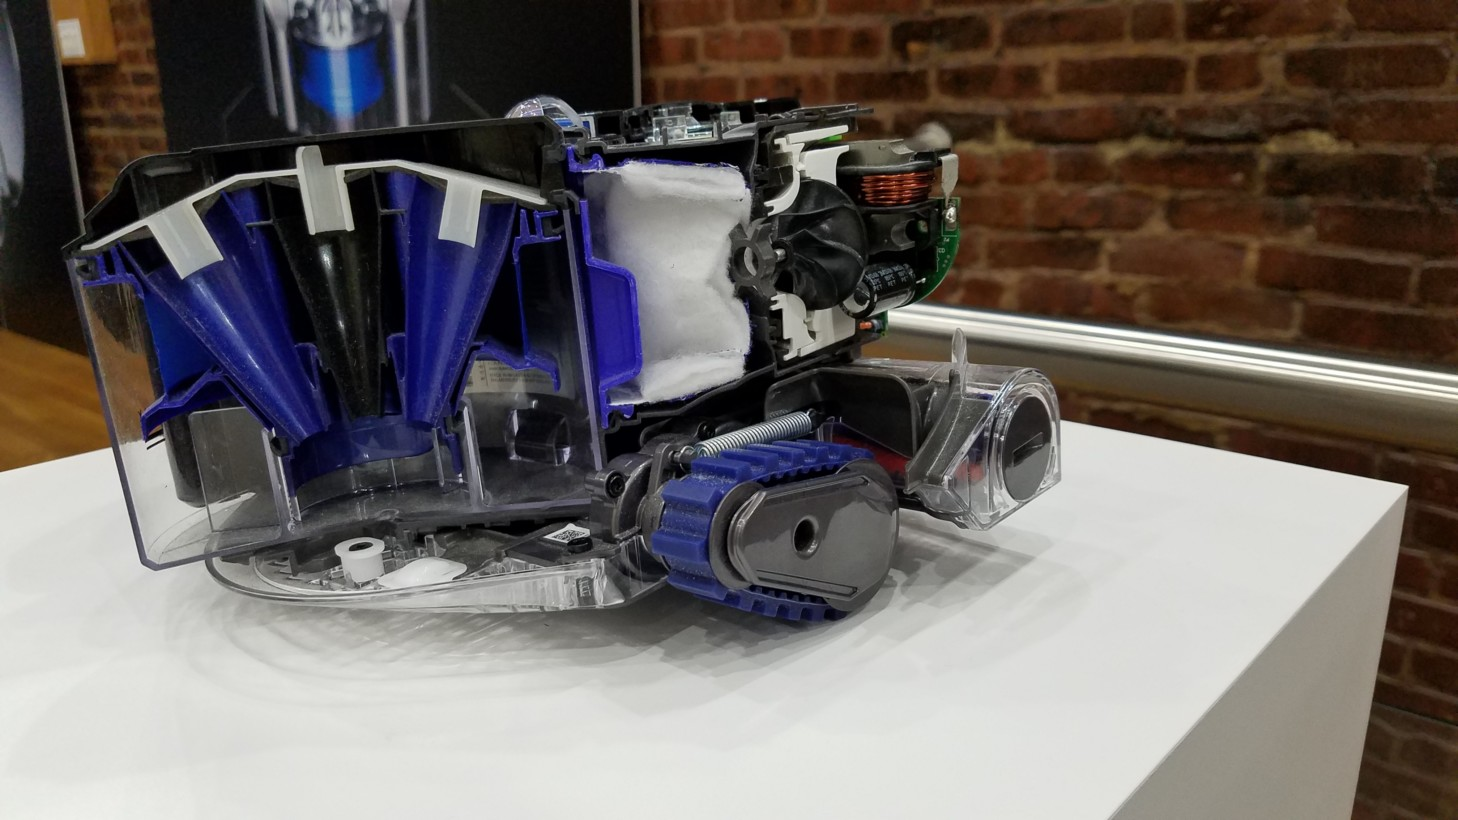 A dissected Dyson 360 Eye which shows the Root Cyclone component, as well as the camera and motherboard